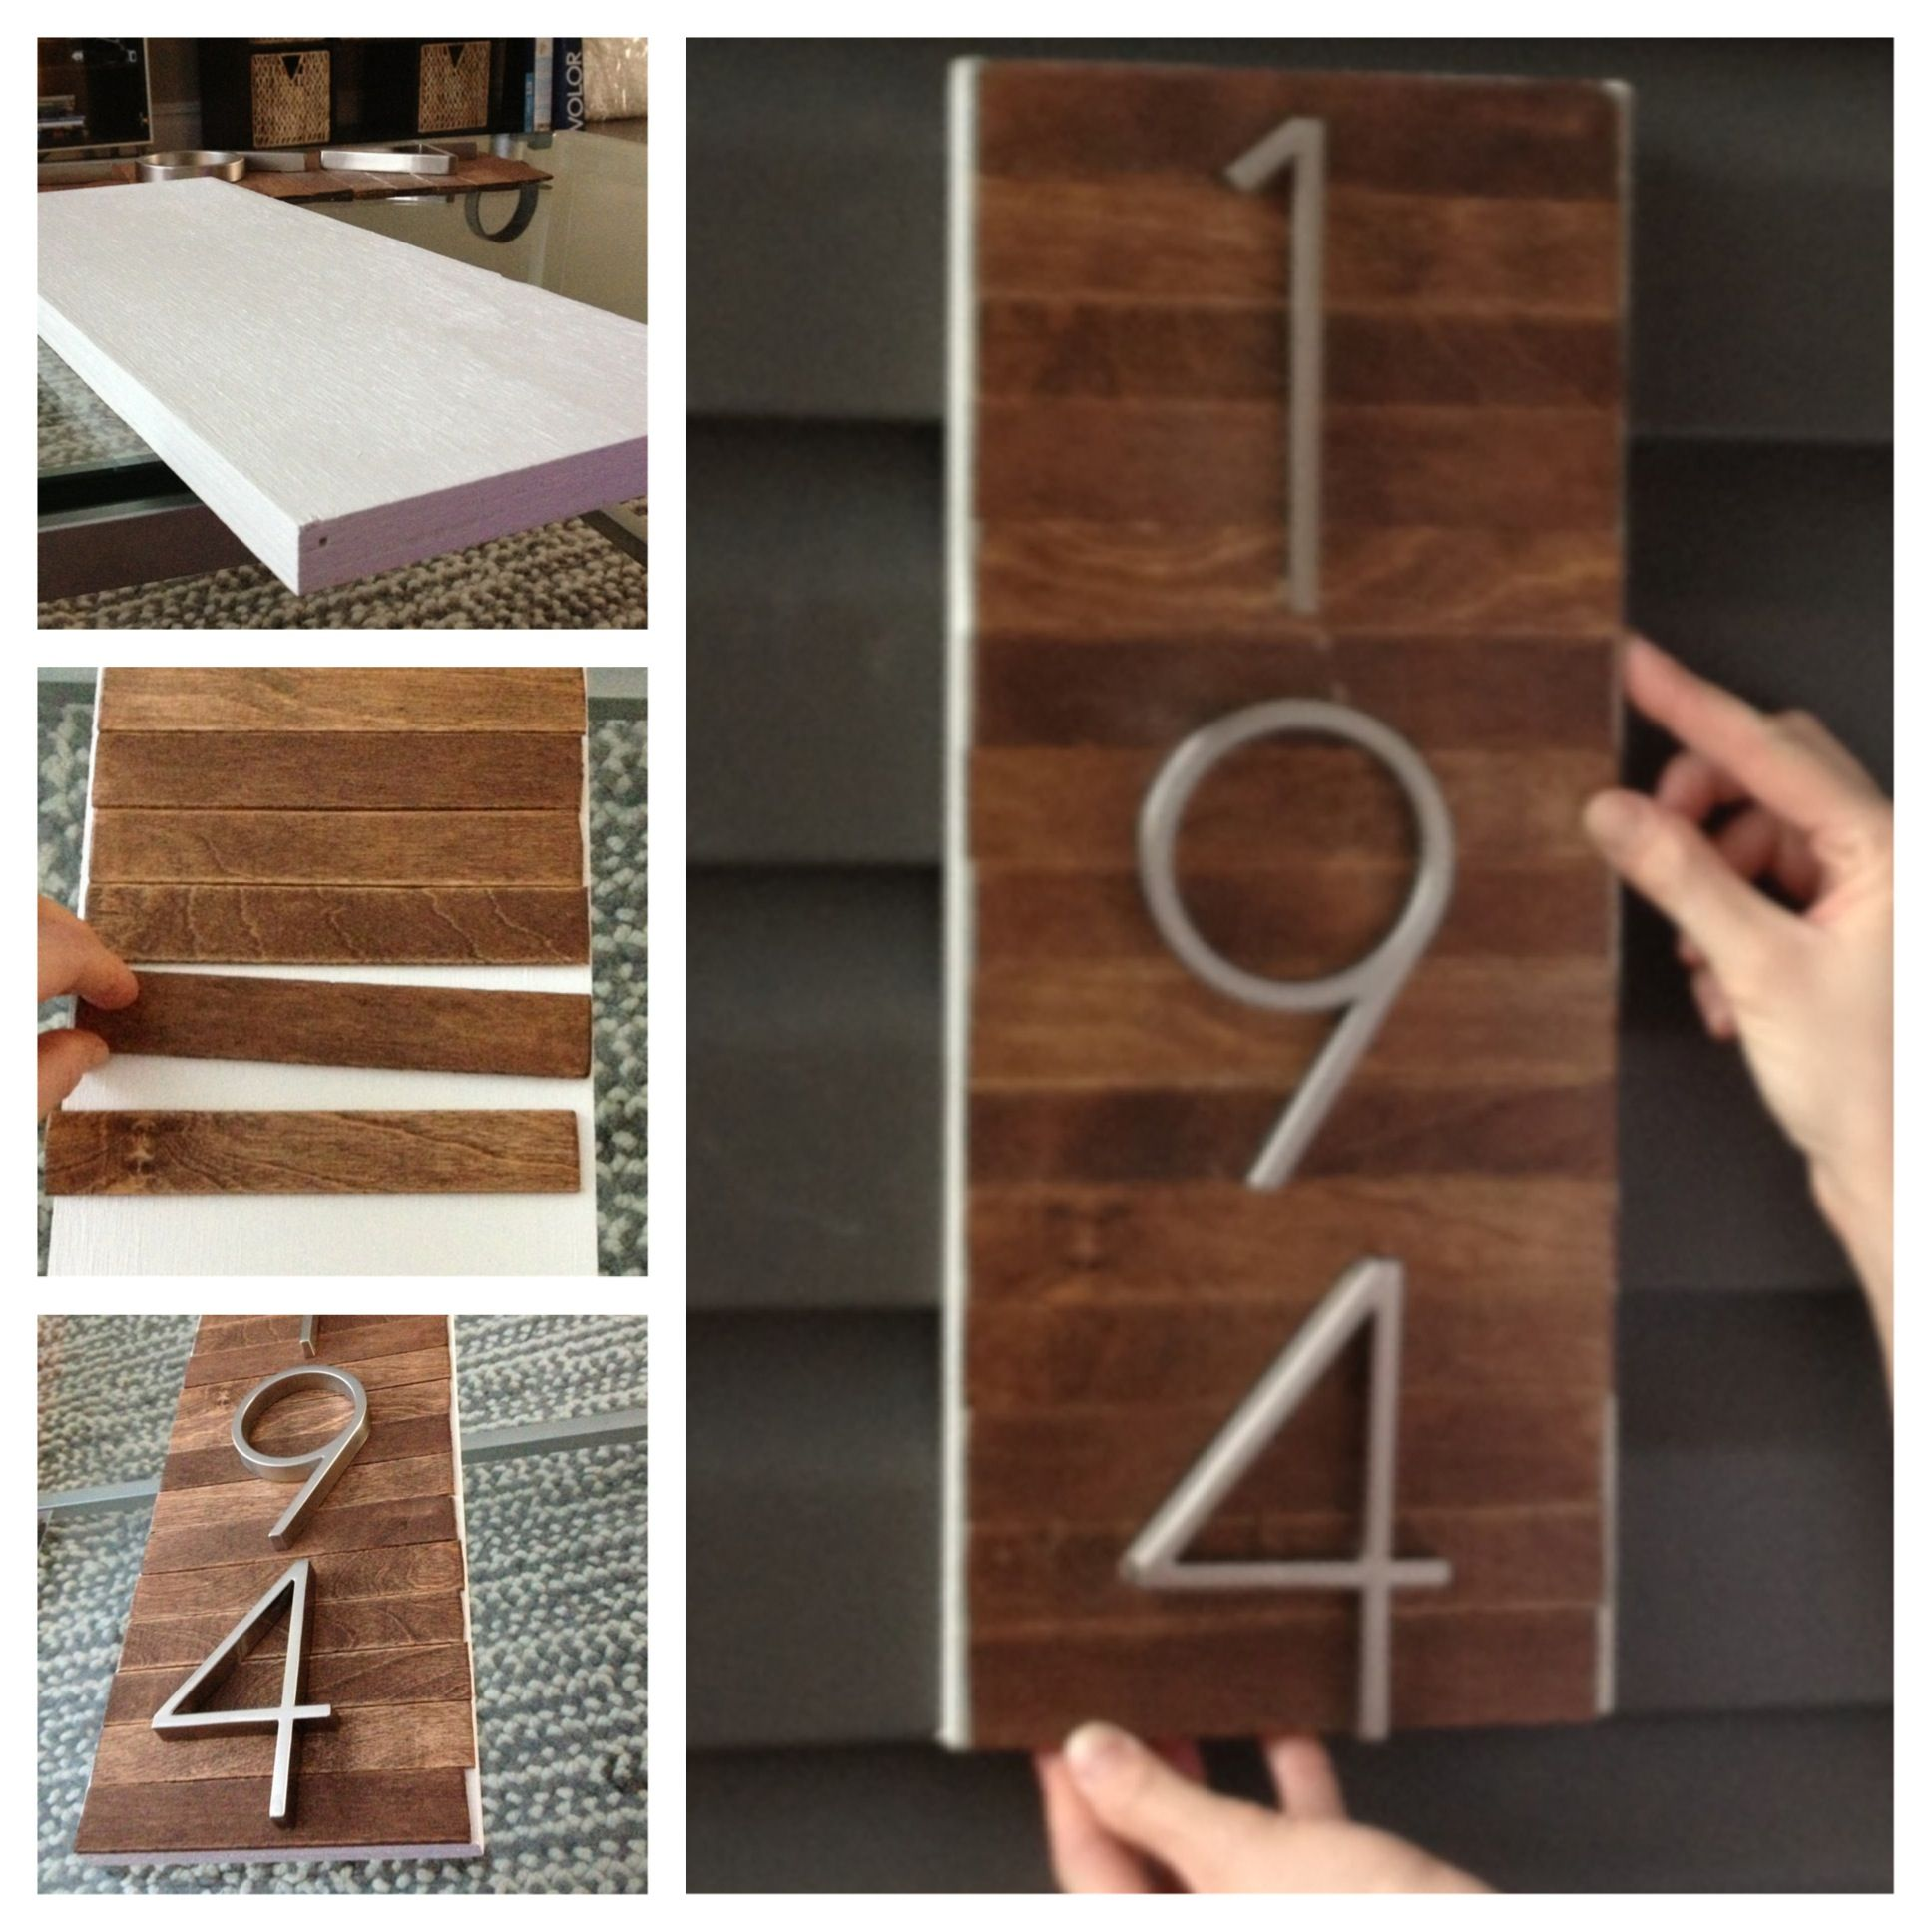 WE could put pretty numbers on a beautiful board. DIY